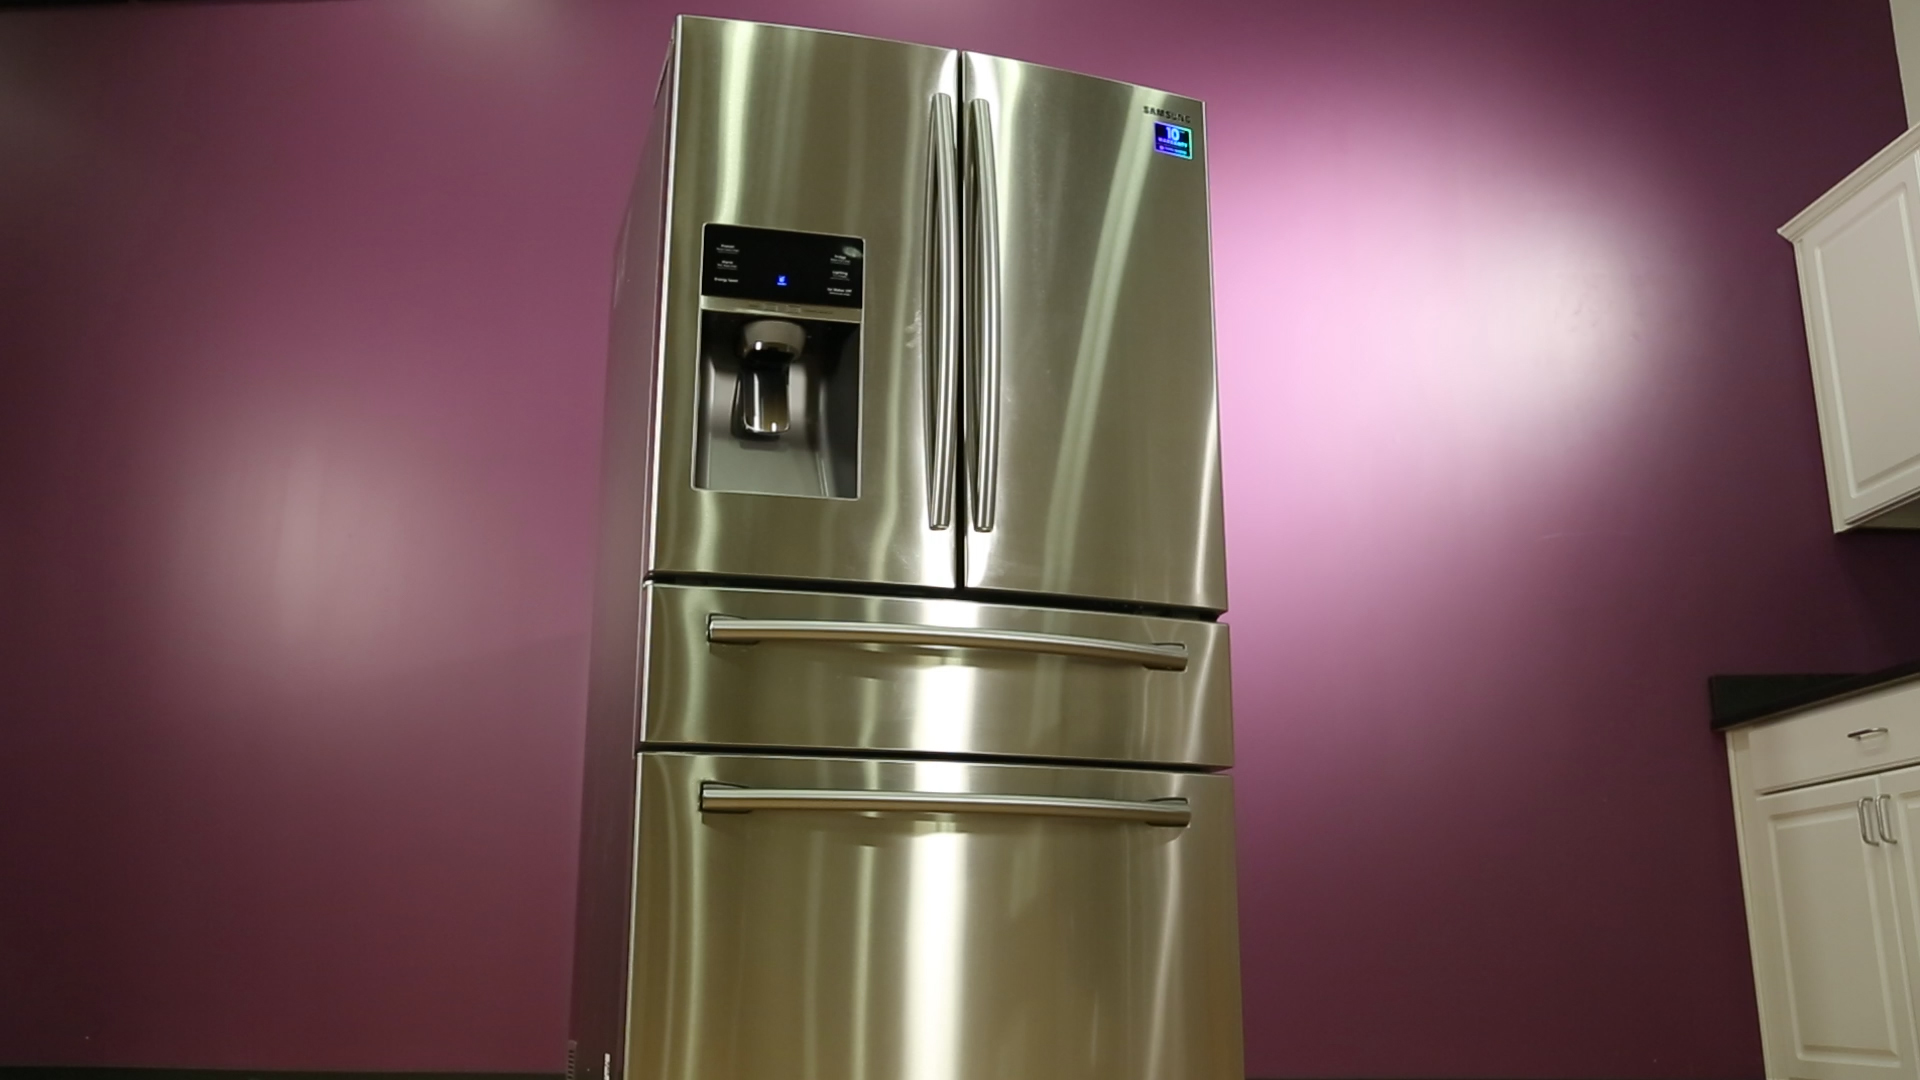 This Samsung fridge comes with a deluxe drawer